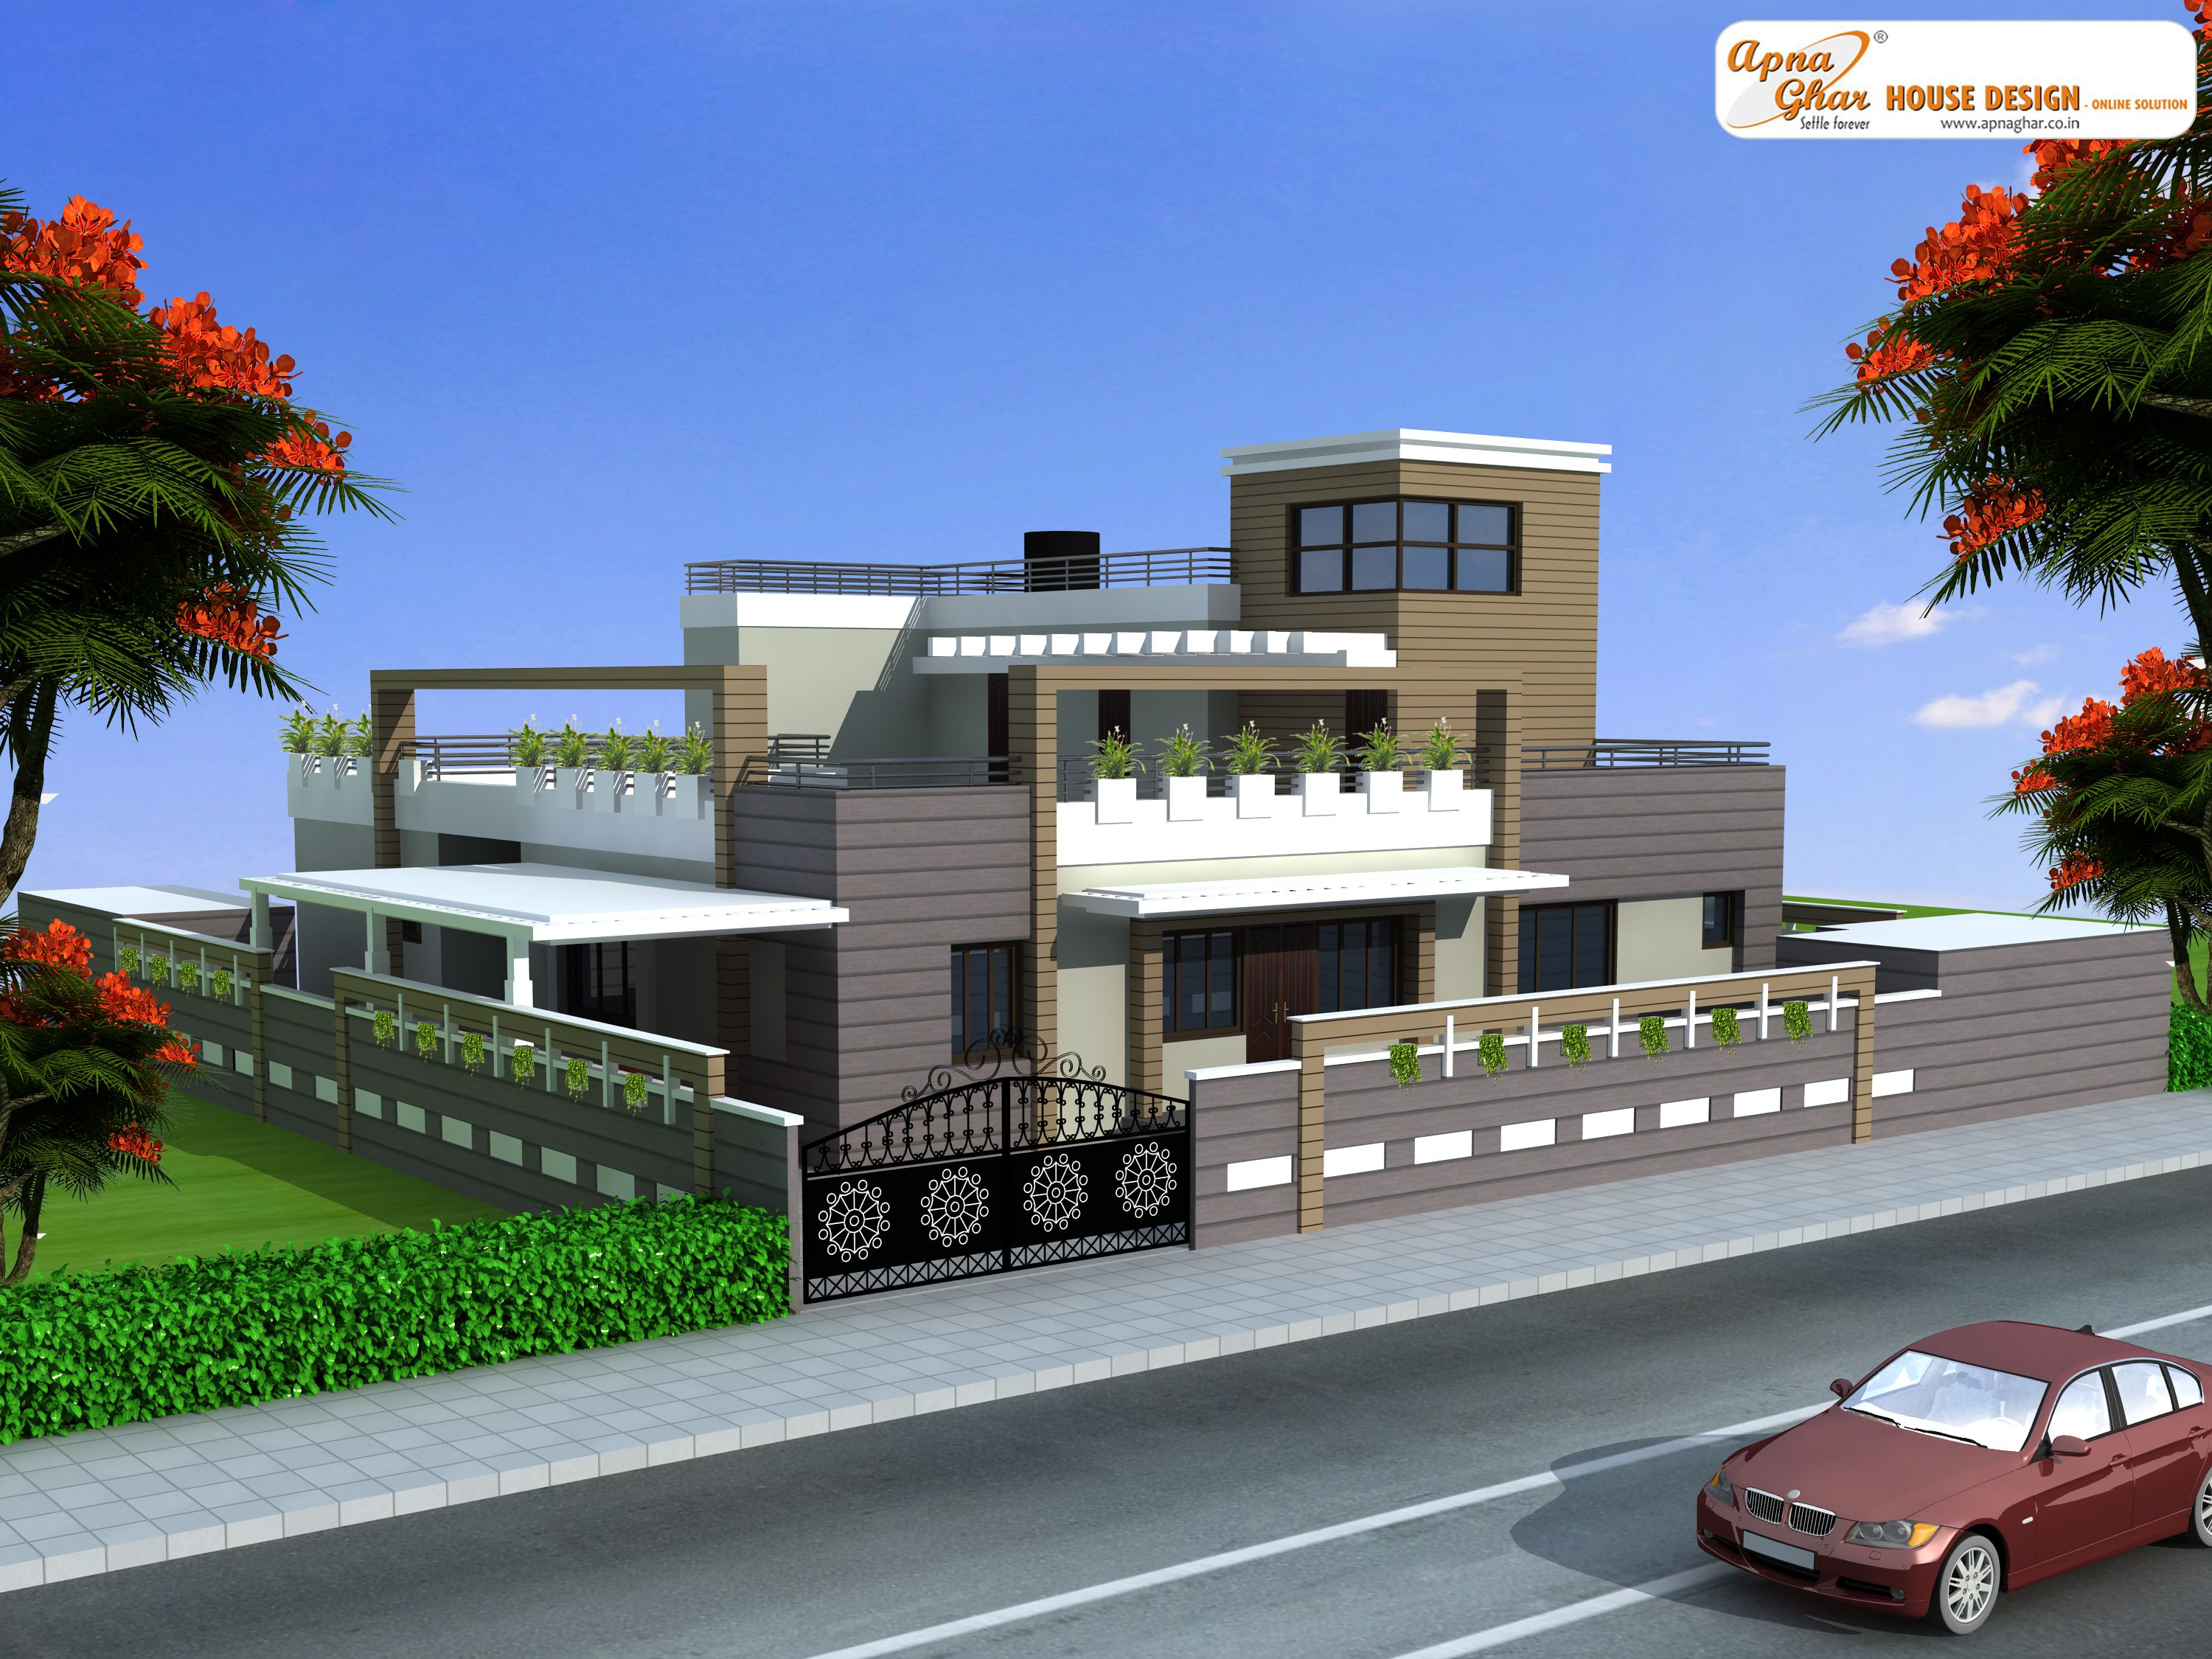 6 Bedroom Duplex 2 Floor House Designclick On This Link Http Magnificent 6 Bedroom House Designs Design Decoration